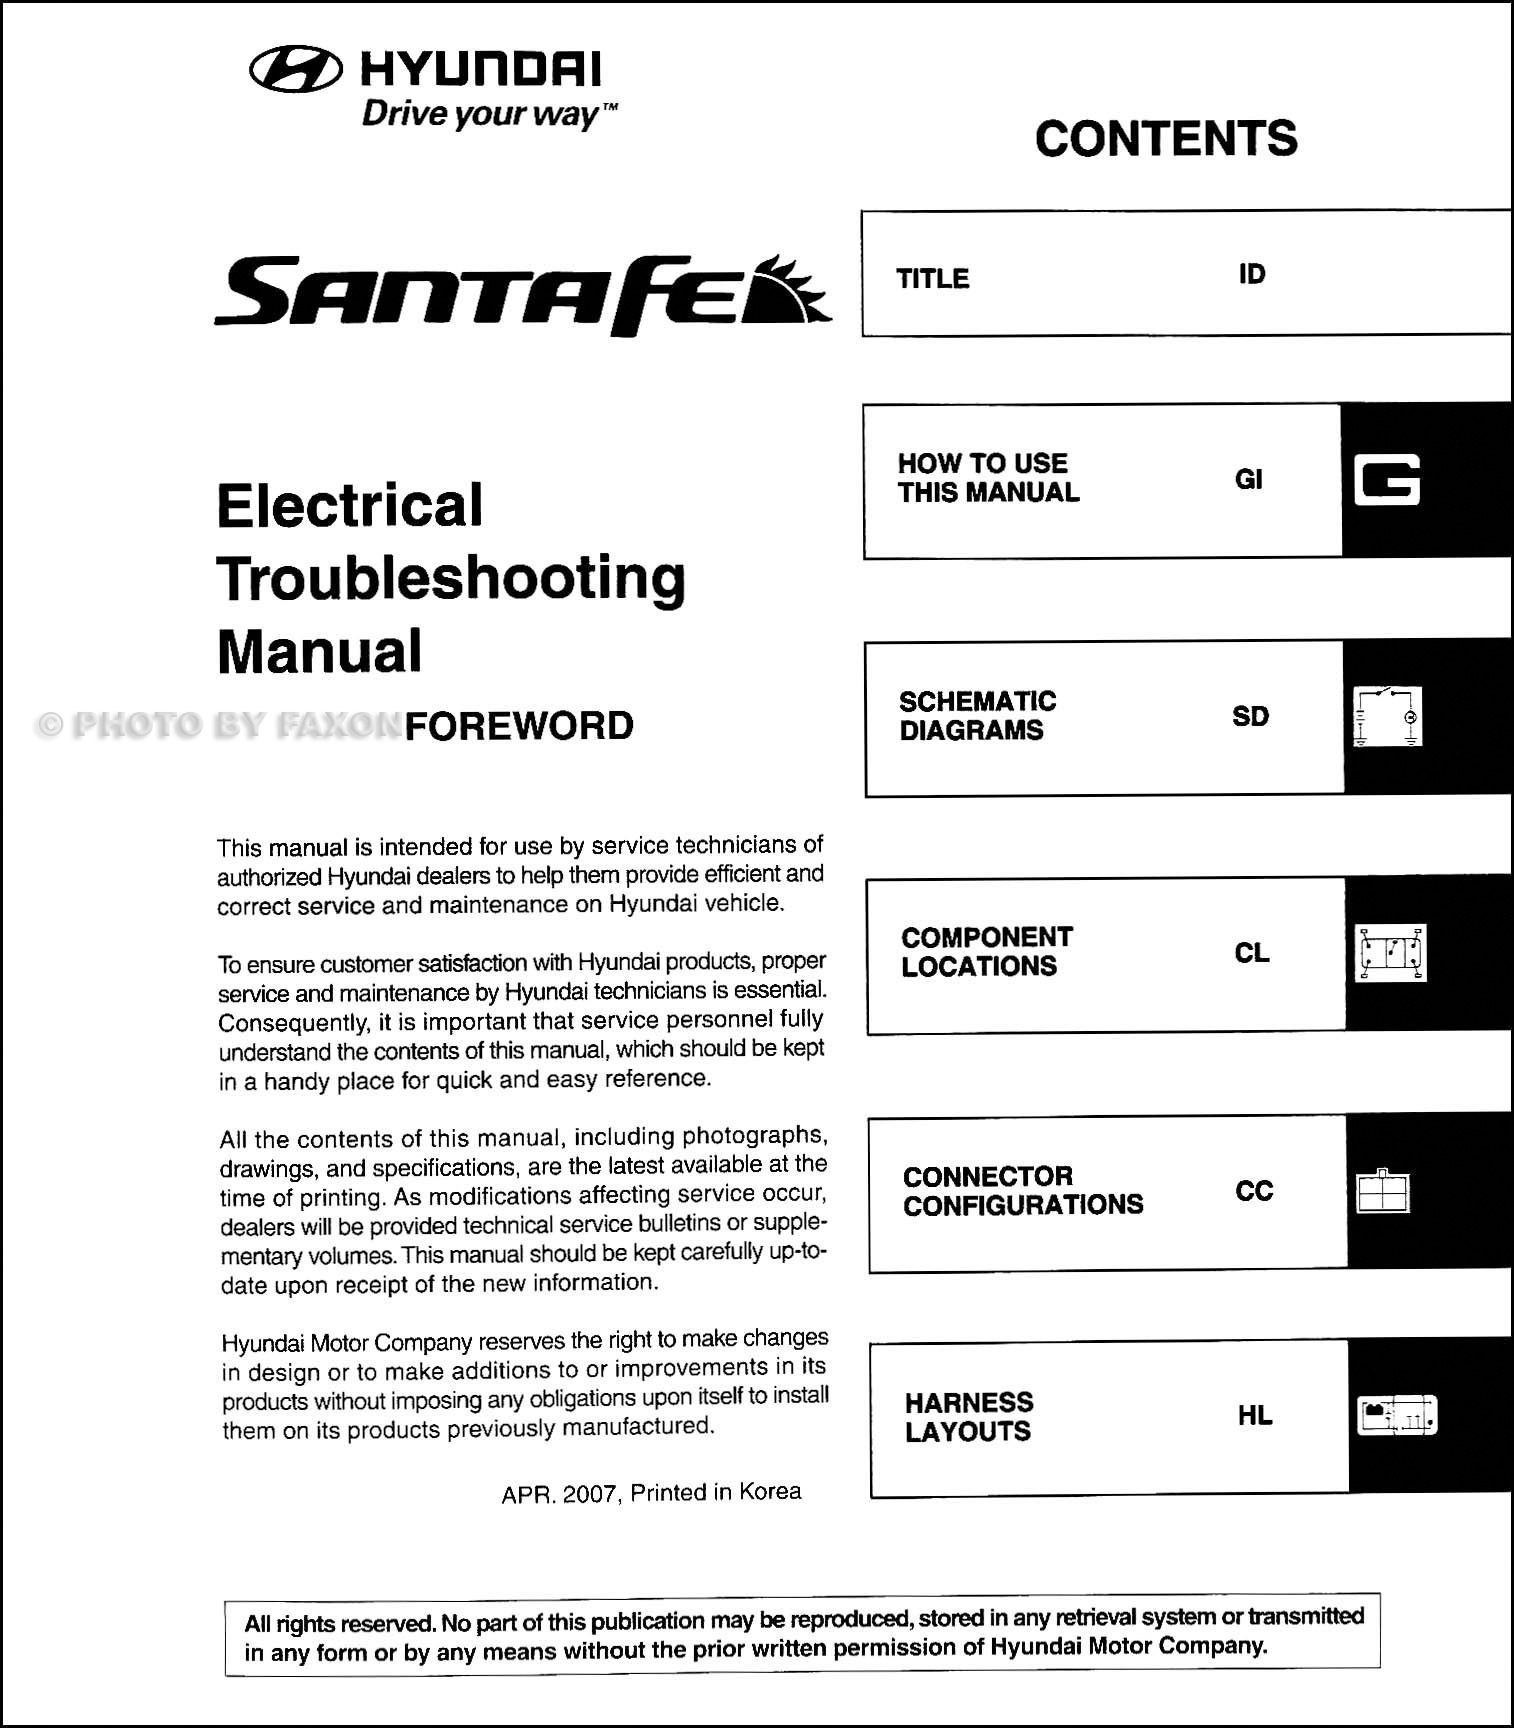 2008 Hyundai Santa Fe Electrical Troubleshooting Manual